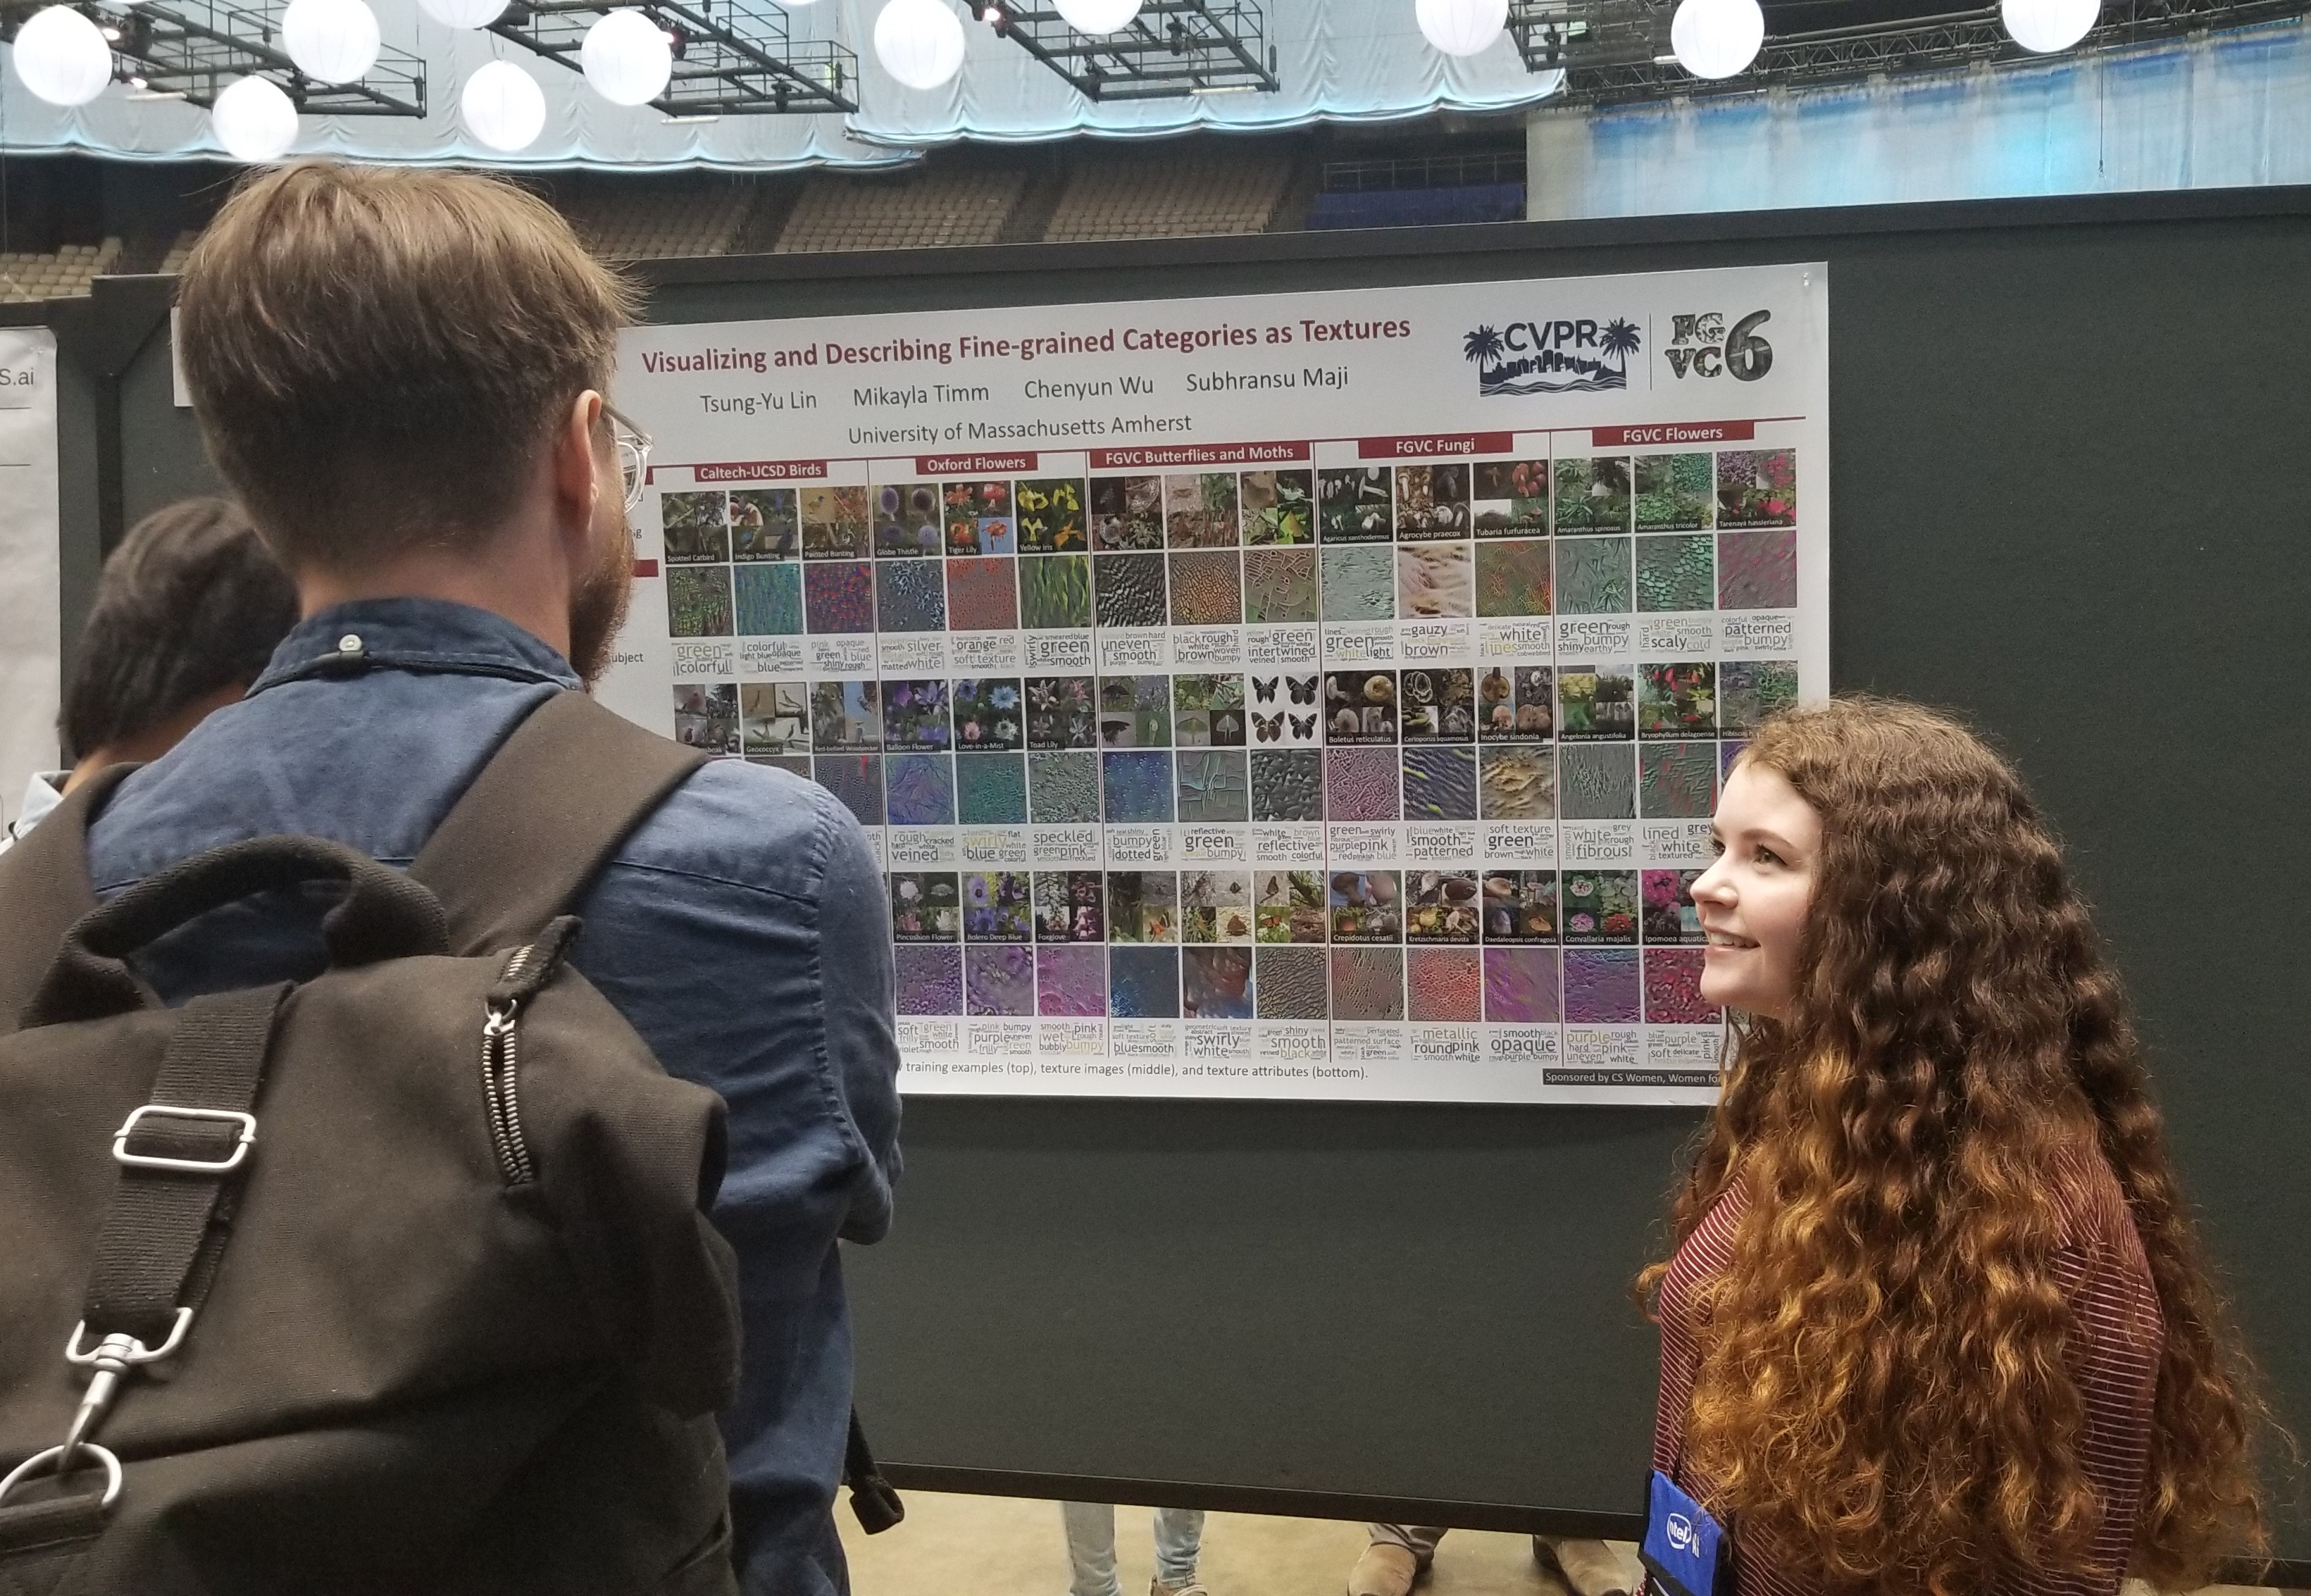 Mikayla Timm attends CVPR 2019 in Long Beach, CA